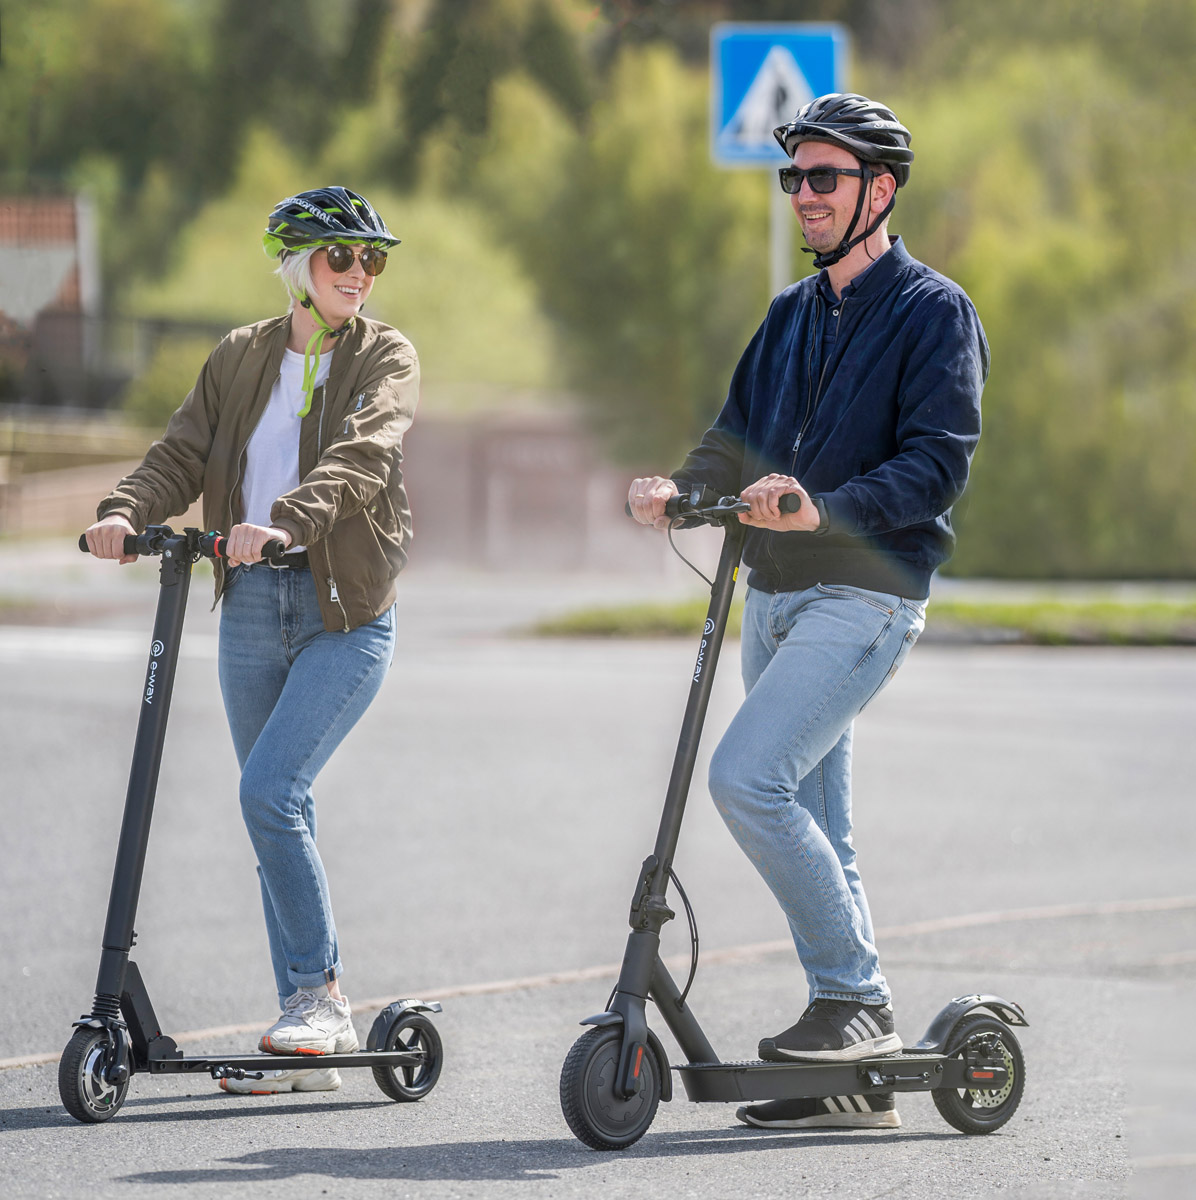 Electric-scooter_Eway_E1_E2Pro_standing-on-the-street_web.jpg